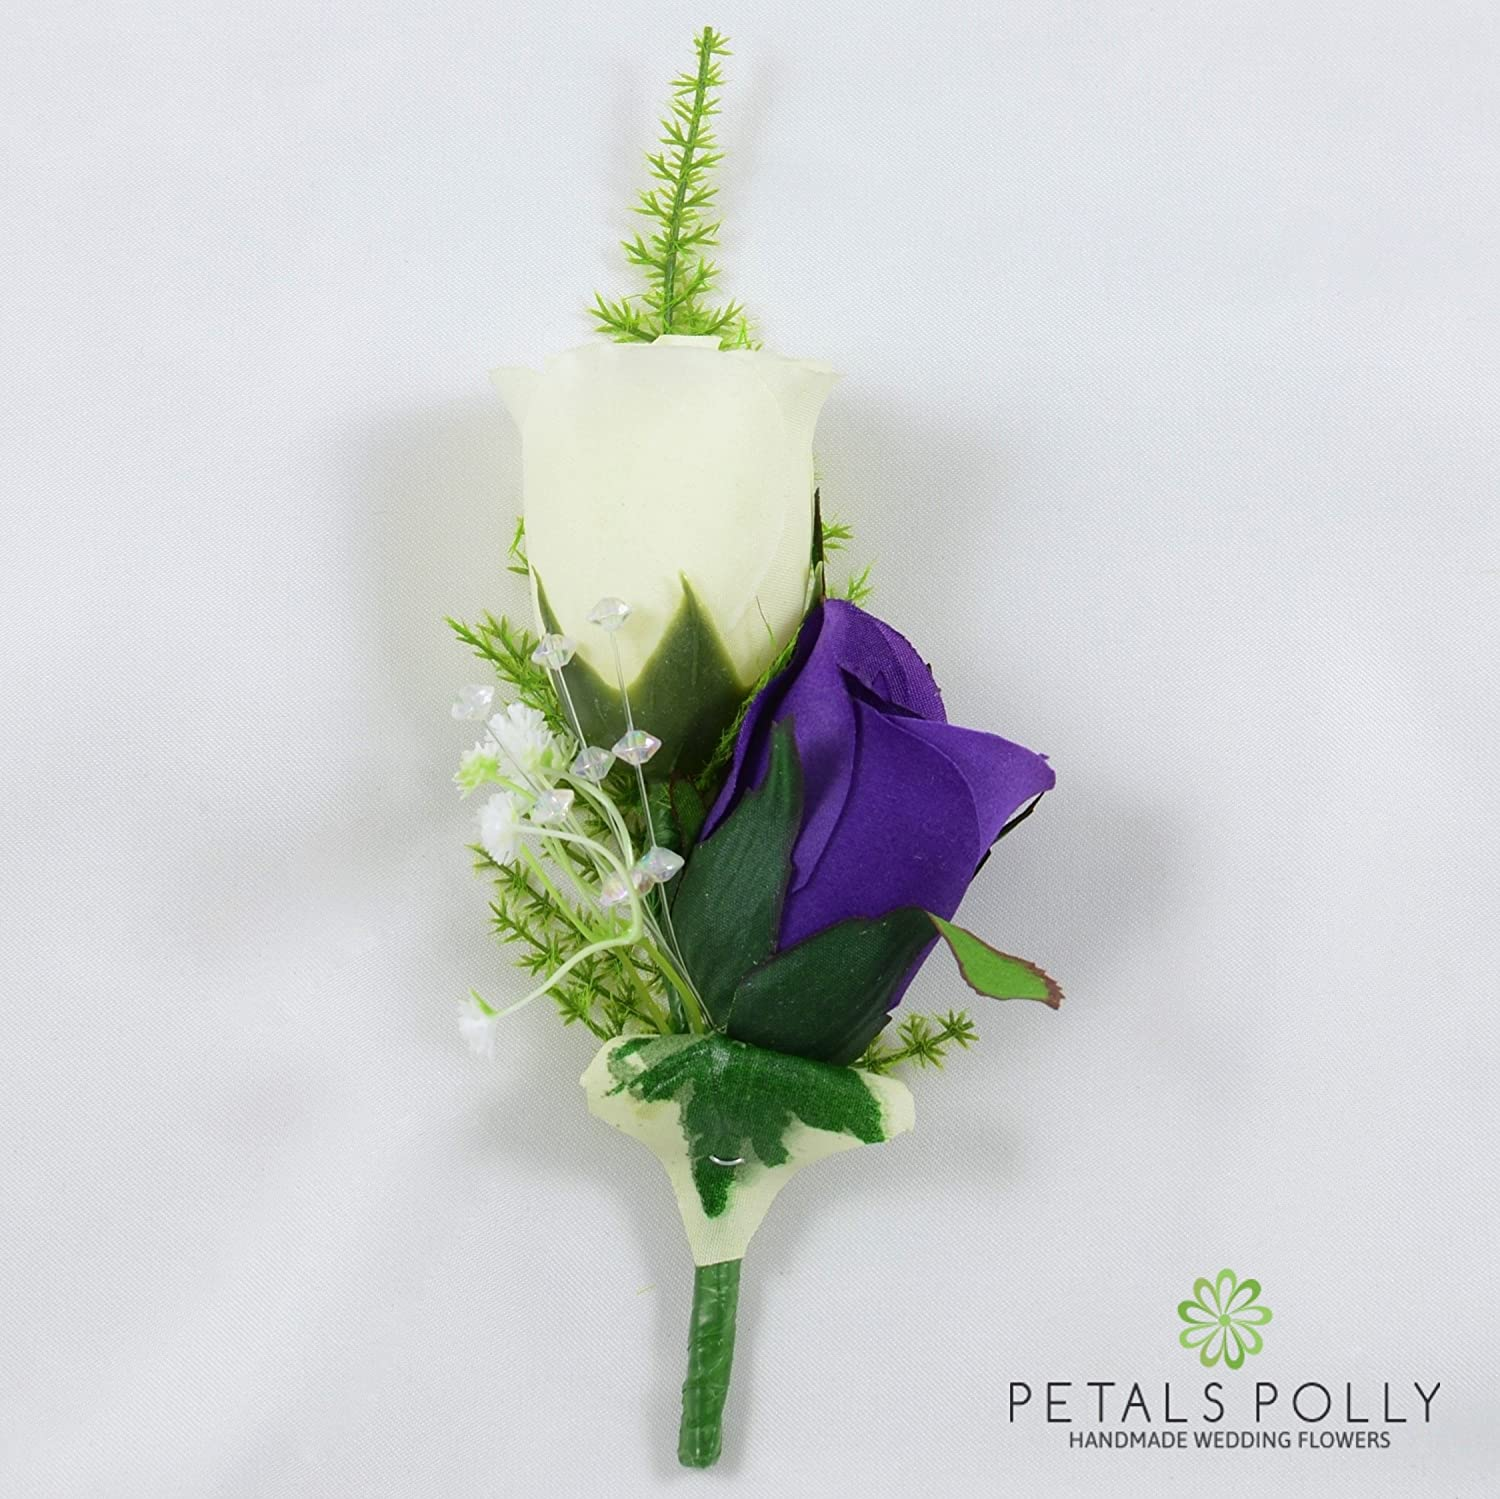 Artificial Wedding Flowers Hand-made by Petals Polly, SILK DOUBLE ROSE BUTTONHOLE IN PURPLE/IVORY PETALS POLLY FLOWERS